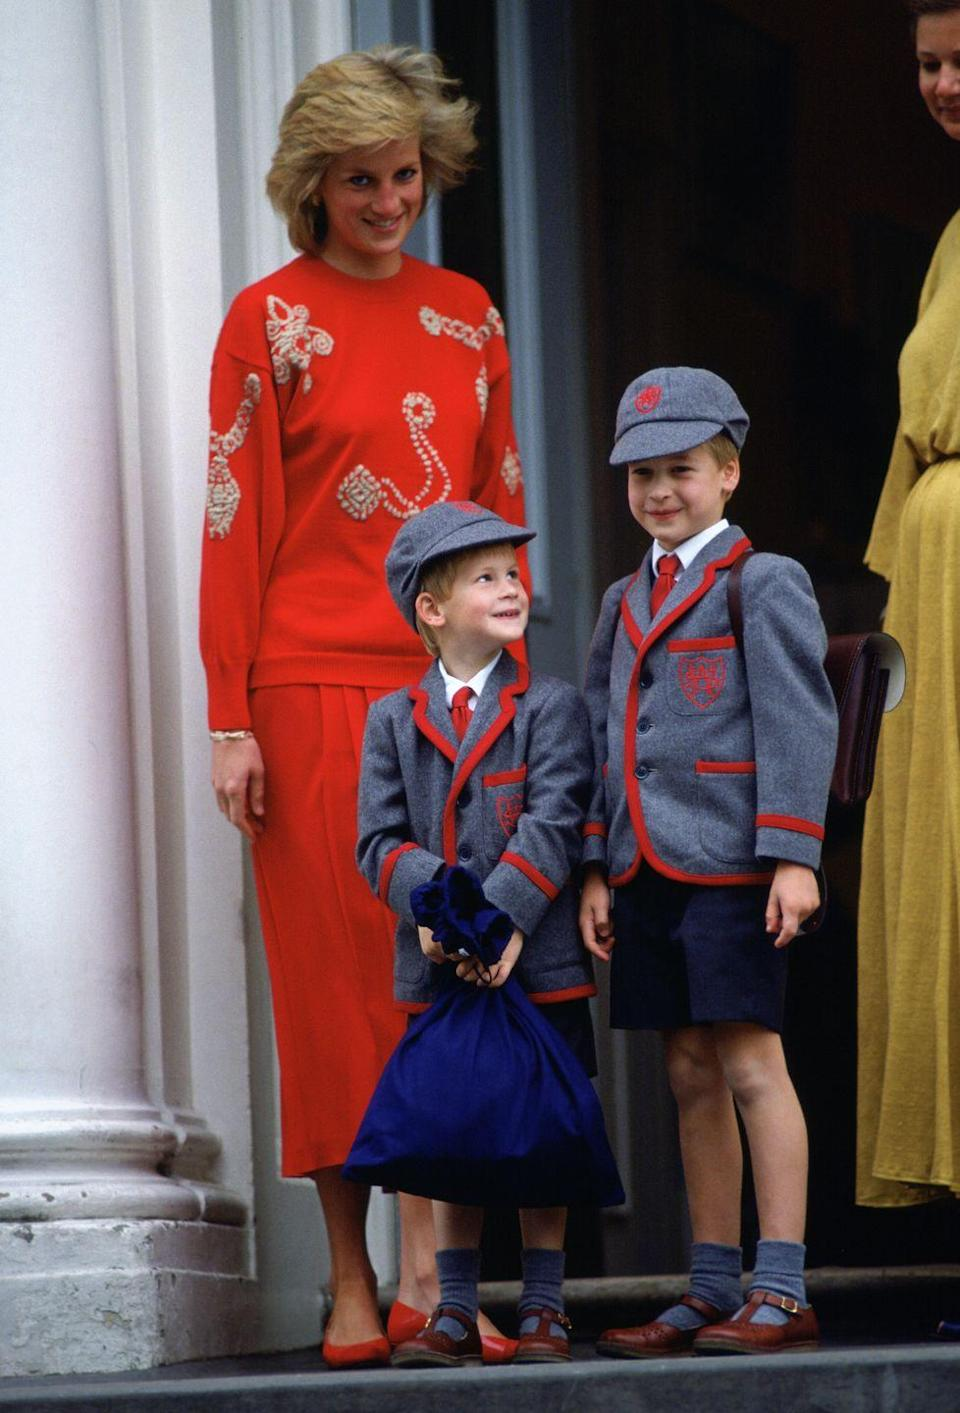 "<p>At his mother's insistence, William became the first heir to the throne to <a href=""http://www.goodhousekeeping.com/life/entertainment/g2733/prince-william-prince-harry-back-to-school-memories/"" rel=""nofollow noopener"" target=""_blank"" data-ylk=""slk:attend public school"" class=""link rapid-noclick-resp"">attend public school</a> — at Jane Mynor's nursery school near Kensington Palace. ""<span class=""redactor-invisible-space"">The decision to have William, 3, develop his finger-painting skills among commoners showed the influence of Diana, Princess of Wales, who had worked in a nursery school herself when she was just a Lady,"" George Hackett <a href=""http://www.newsweek.com/princess-diana-diana-william-harry-prince-william-prince-harry-royal-family-383384"" rel=""nofollow noopener"" target=""_blank"" data-ylk=""slk:wrote"" class=""link rapid-noclick-resp"">wrote</a> in <em>Newsweek </em>in 1985. </span></p>"